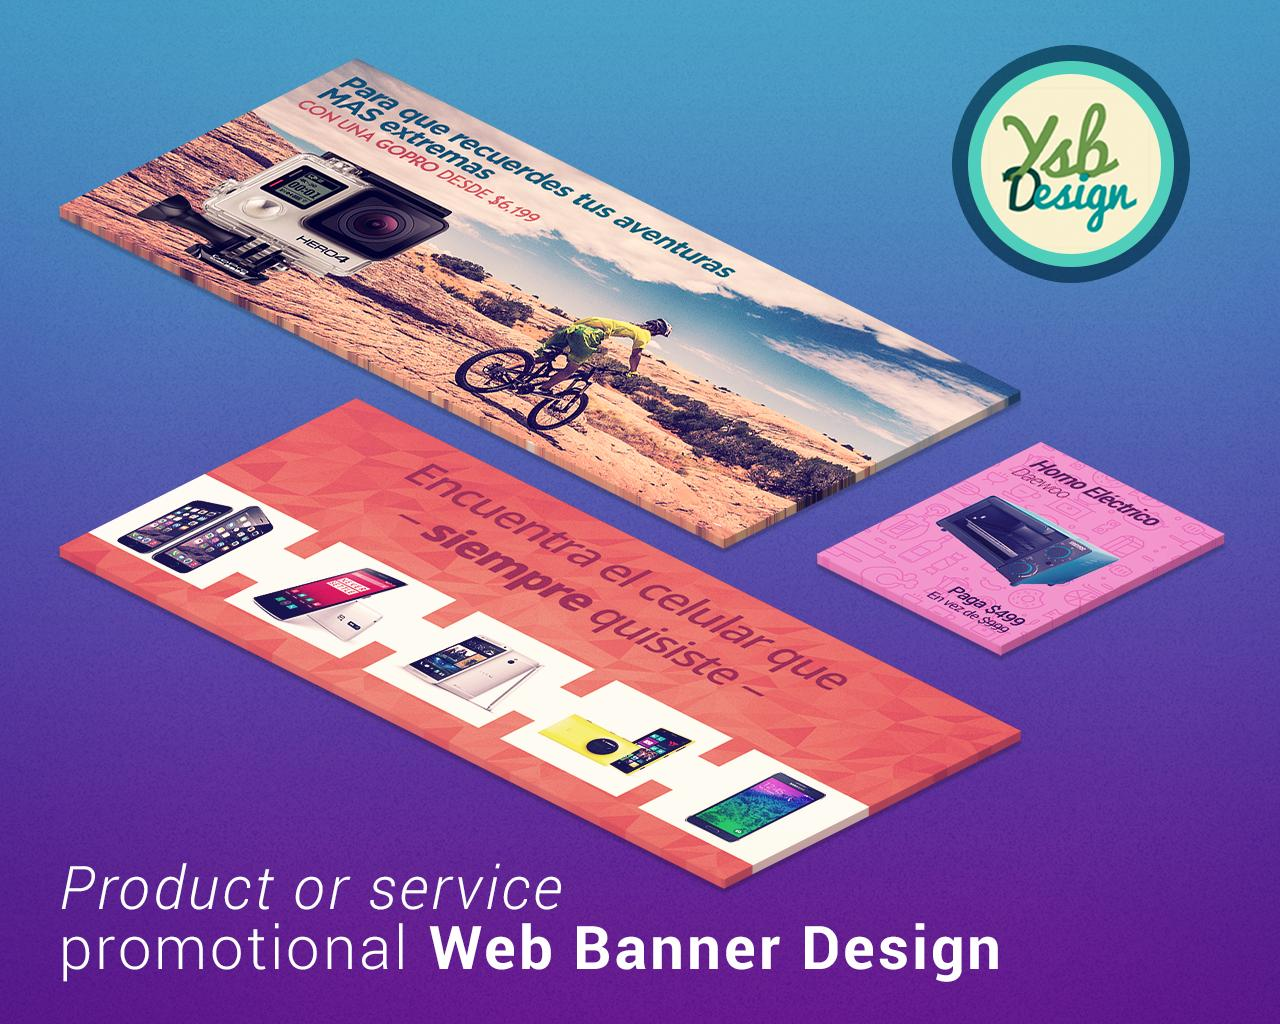 Product or Service Promotional Web Banner Design by YSB - 103259